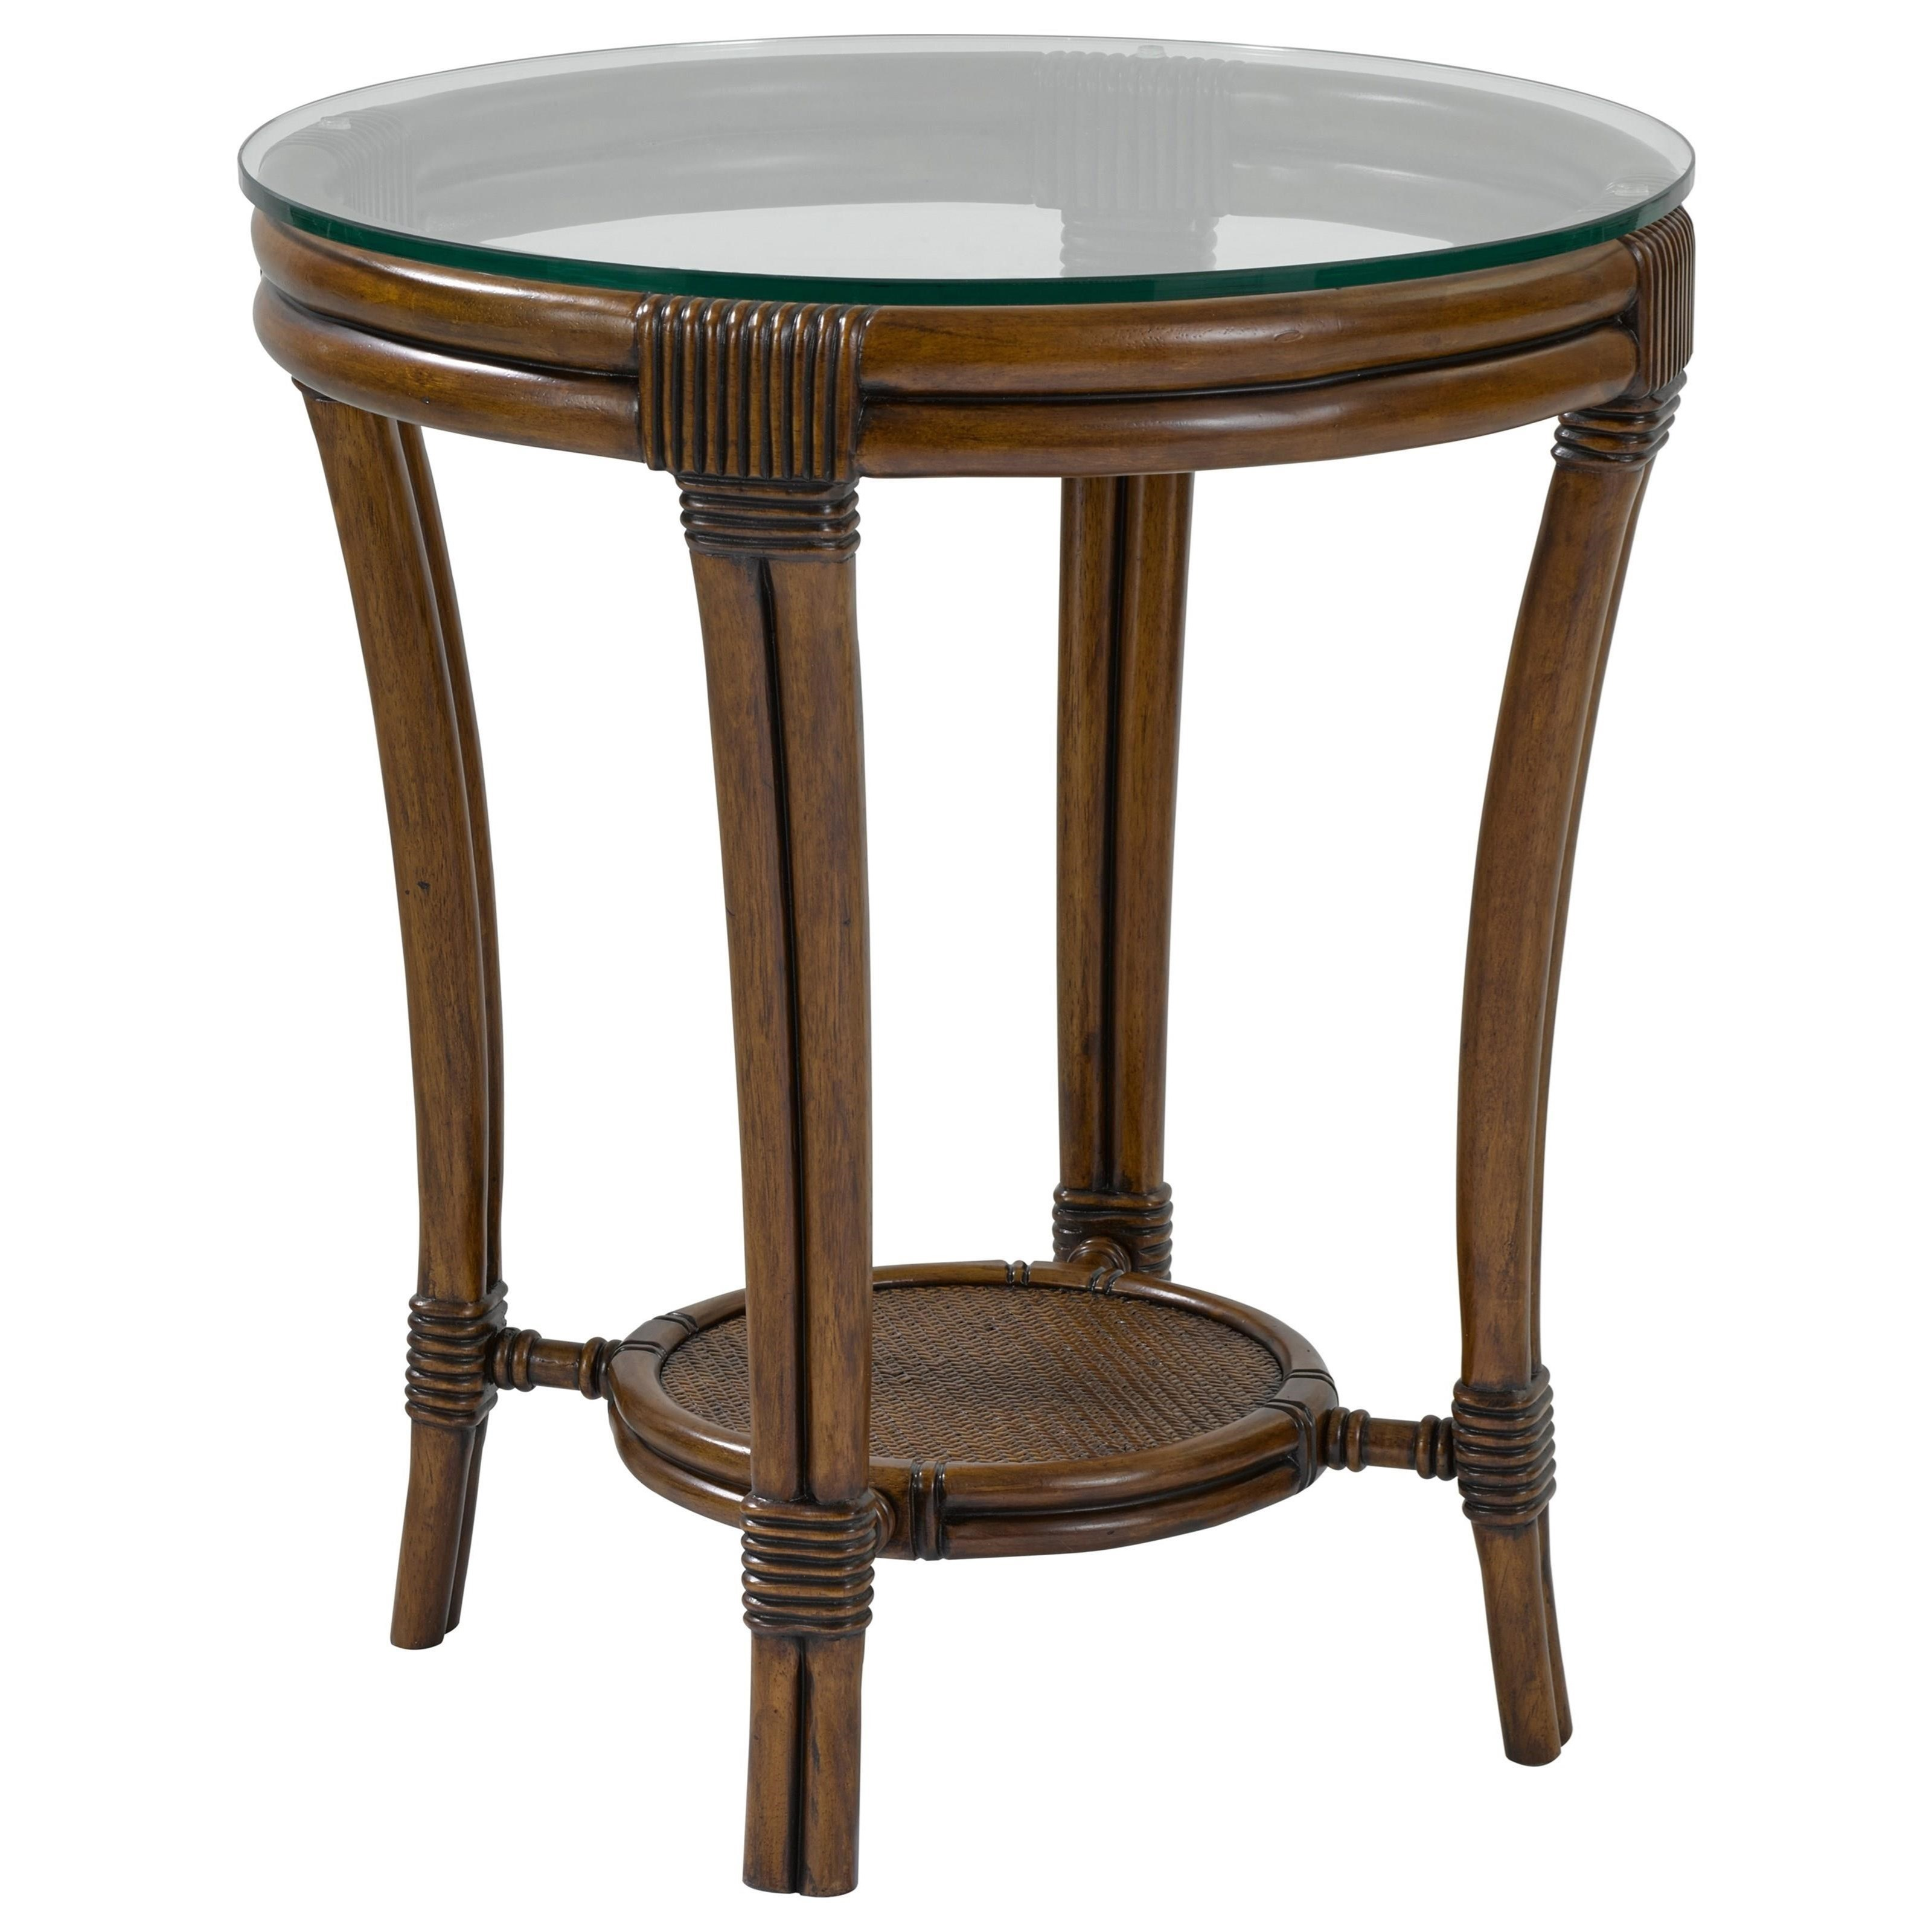 Broyhill Furniture Amalie Bay 4548 000 Round Lamp Table